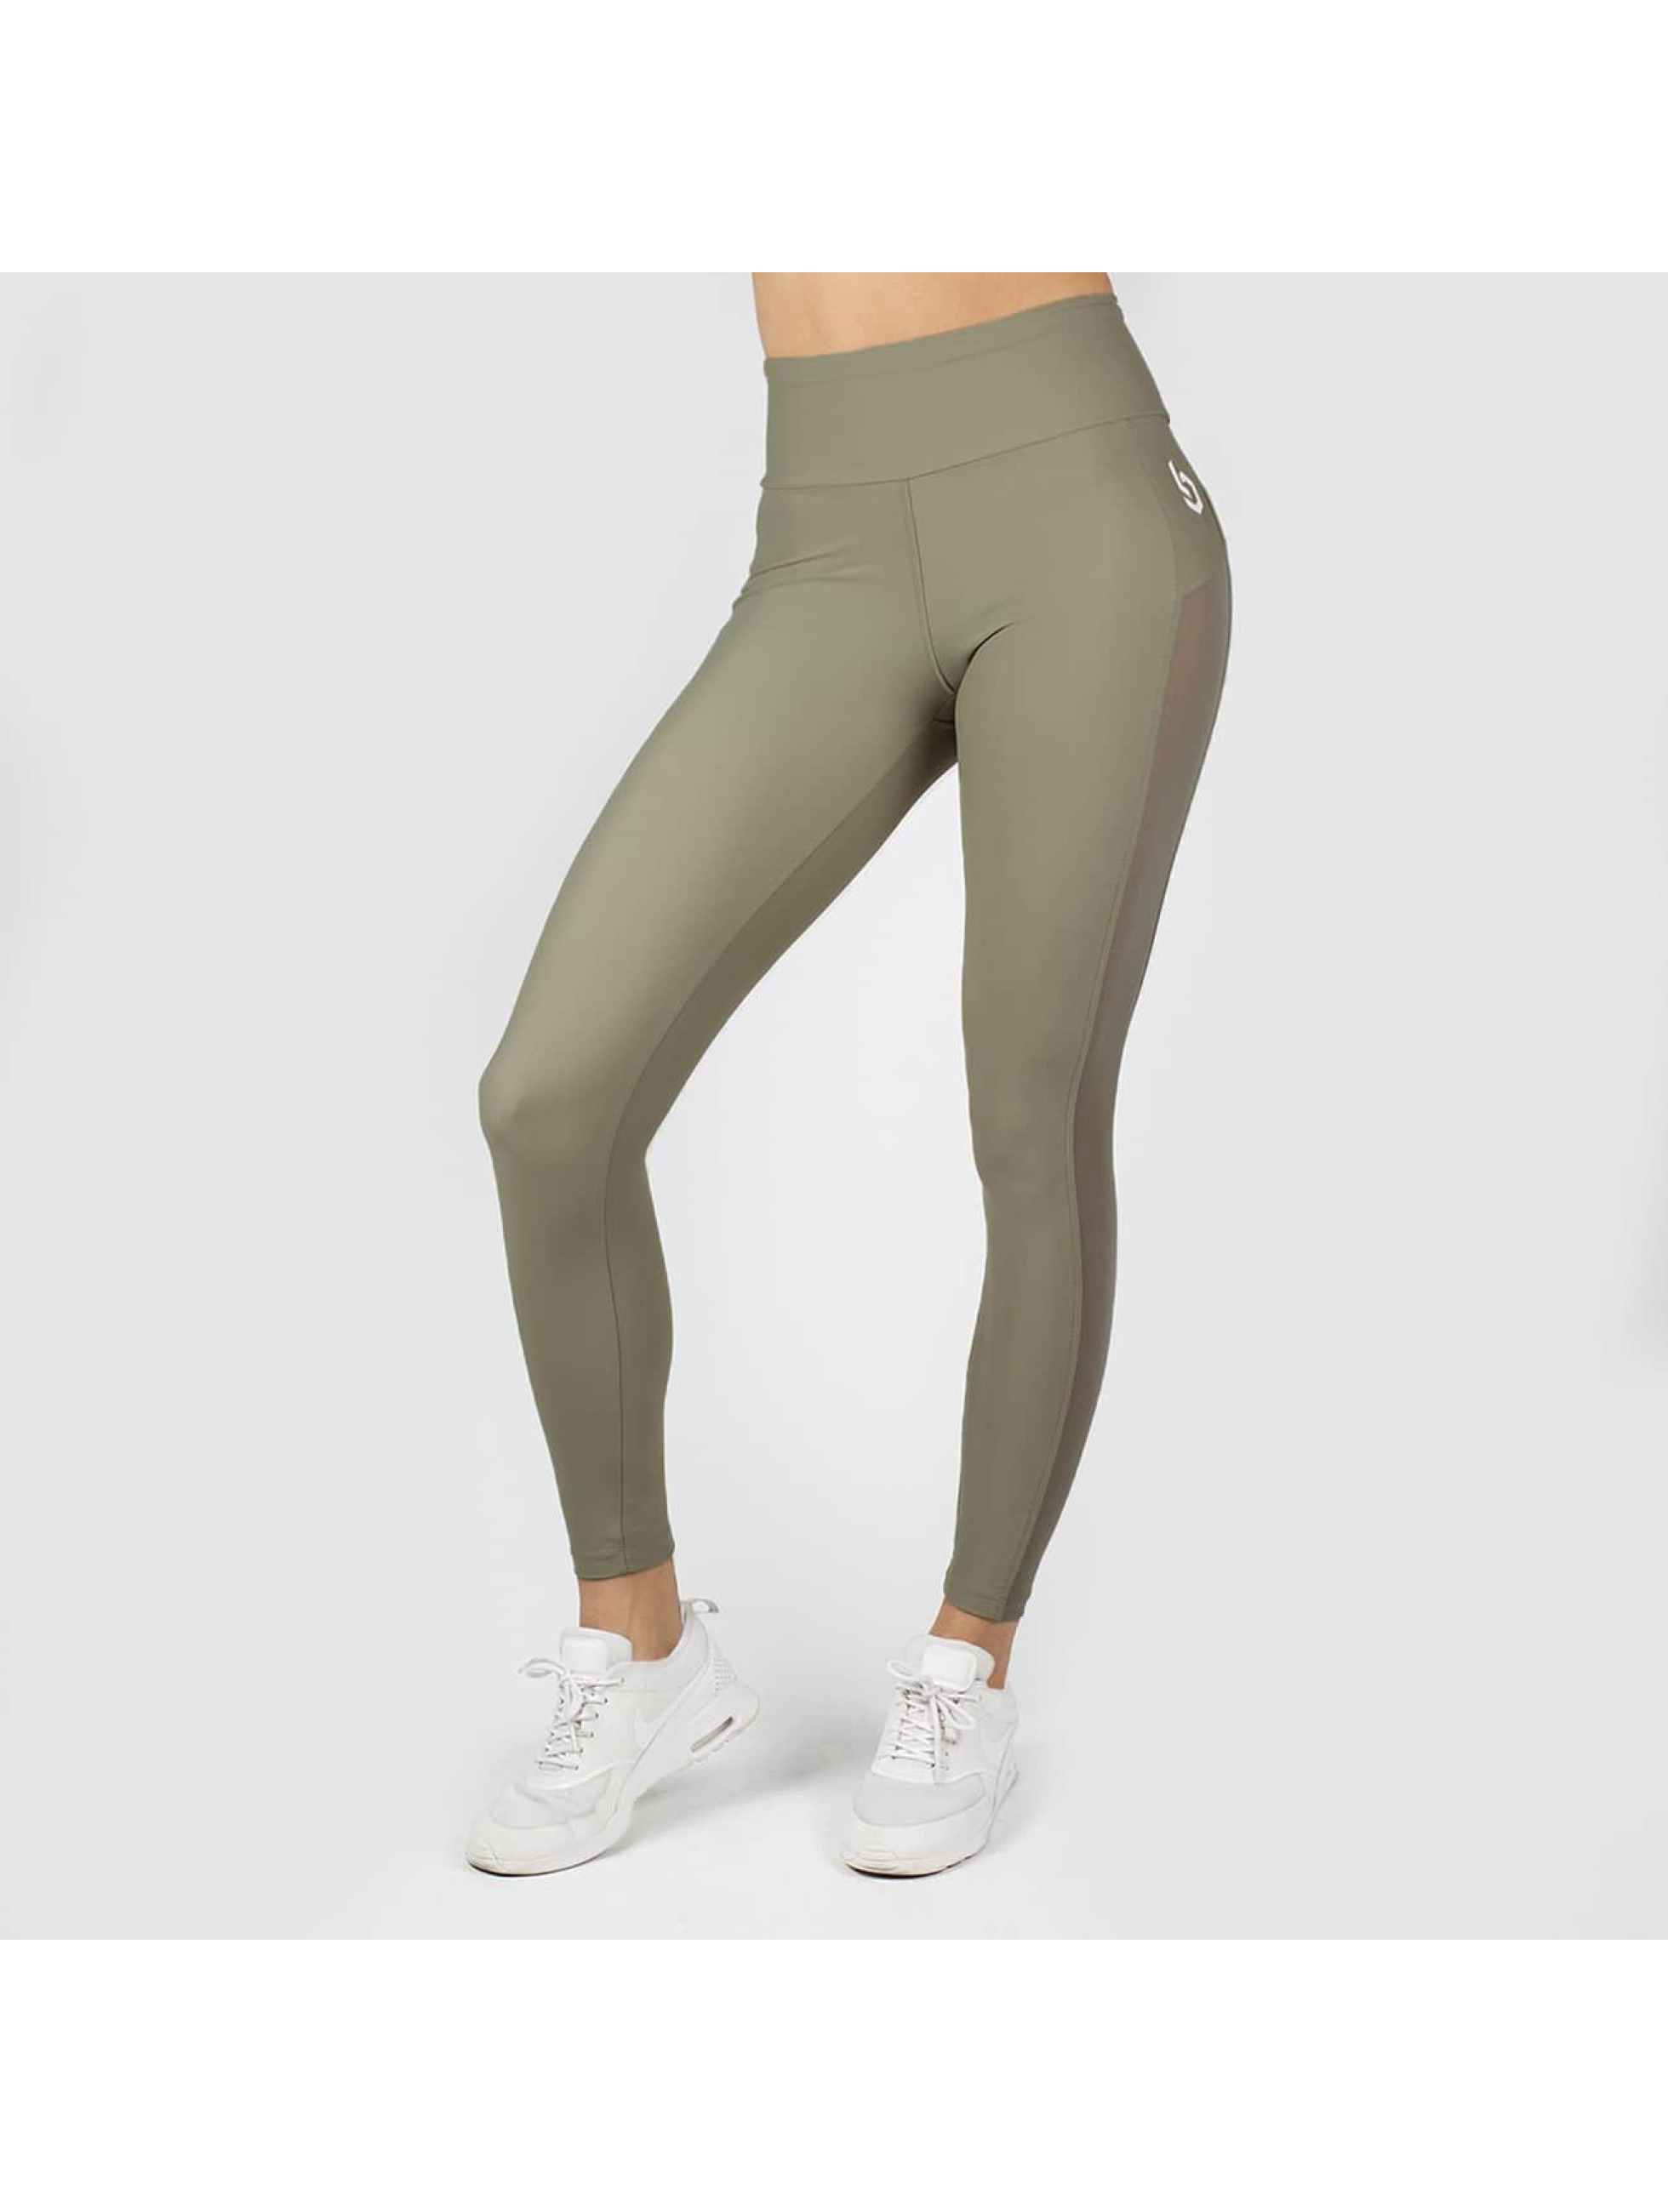 Beyond Limits Legging/Tregging High Waist Mesh khaki